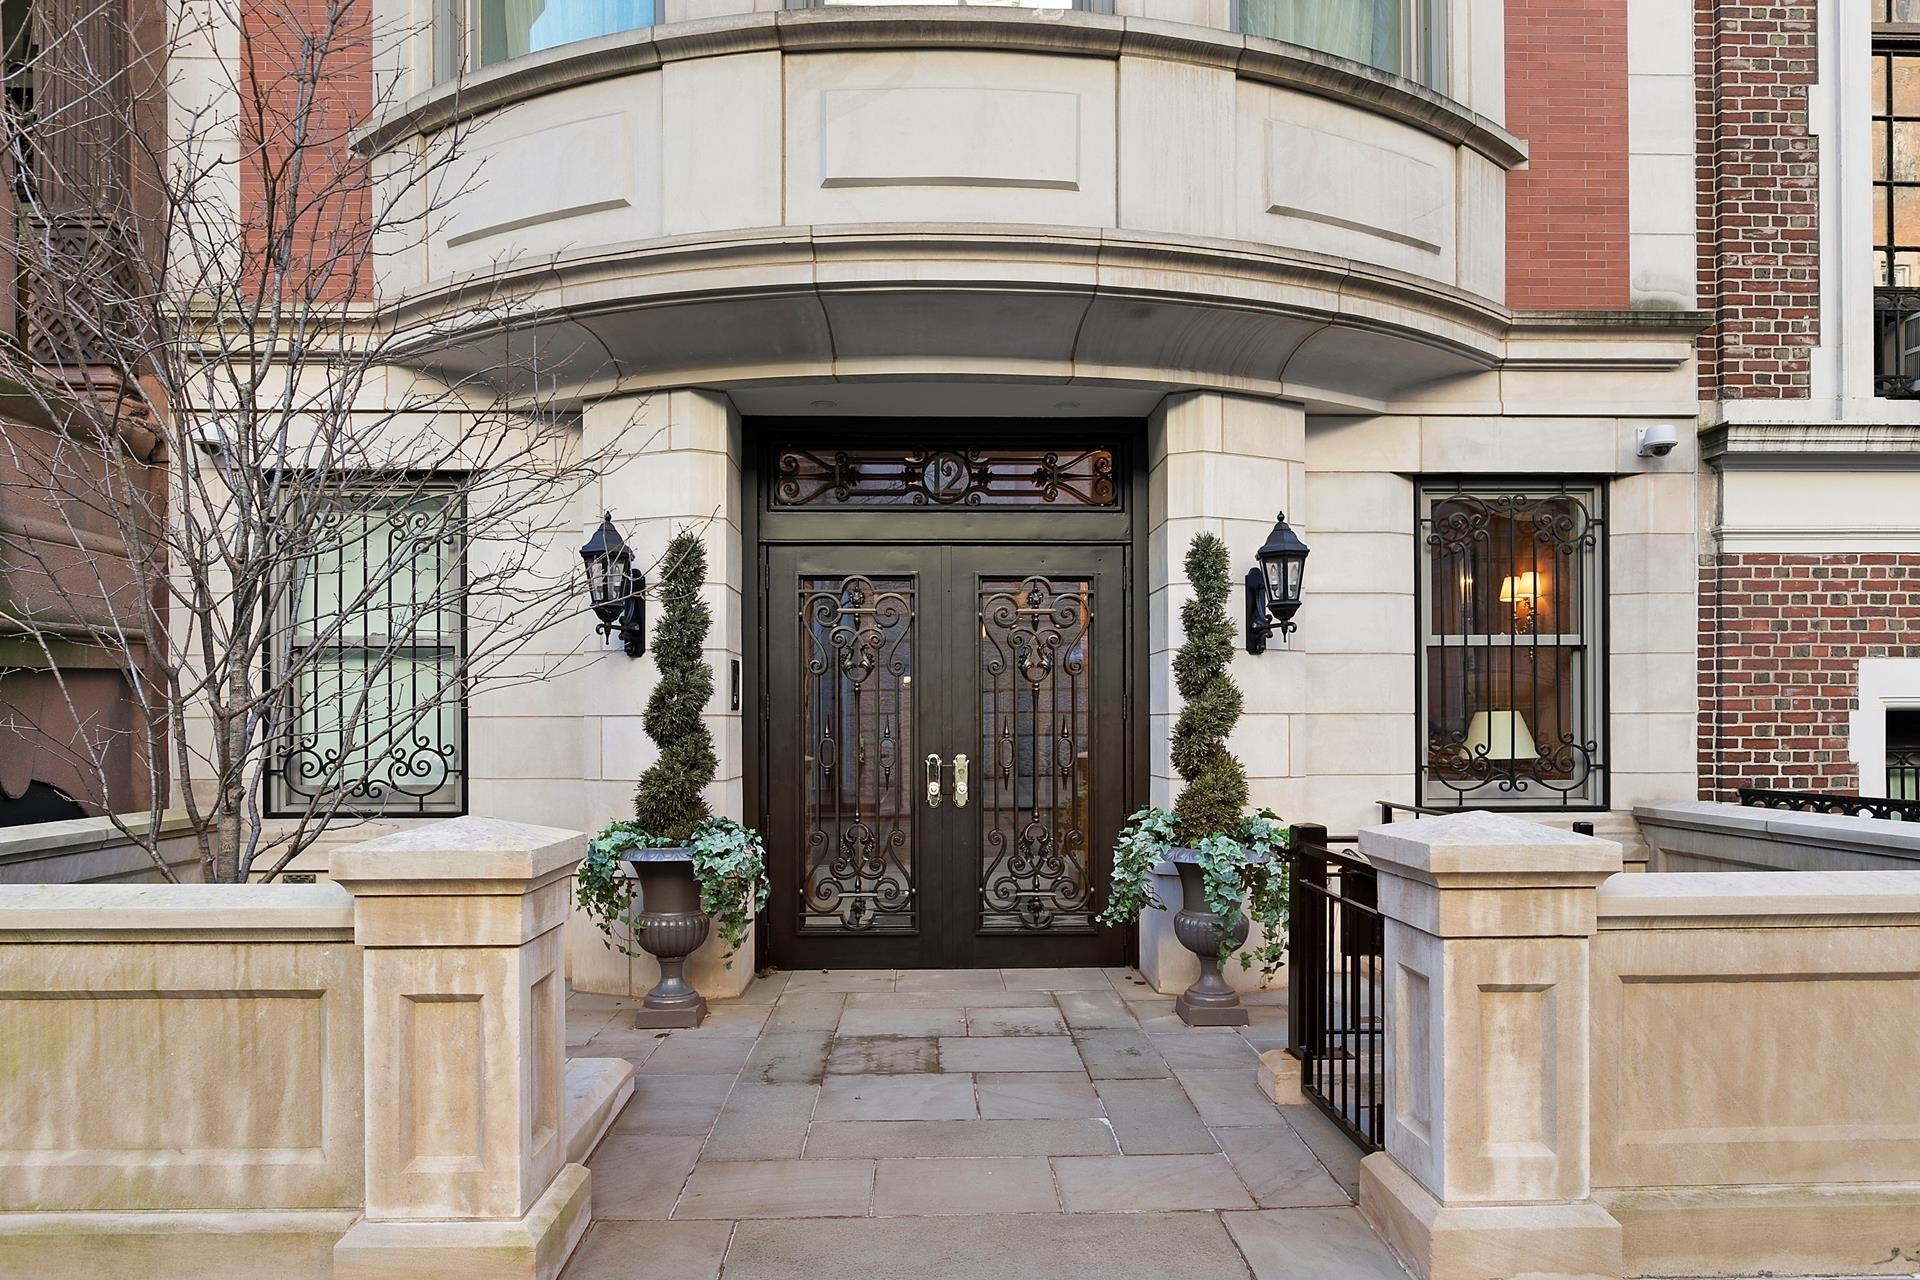 25. Single Family Townhouse for Sale at 12 E 63RD ST , TOWNHOUSE Lenox Hill, New York, NY 10065